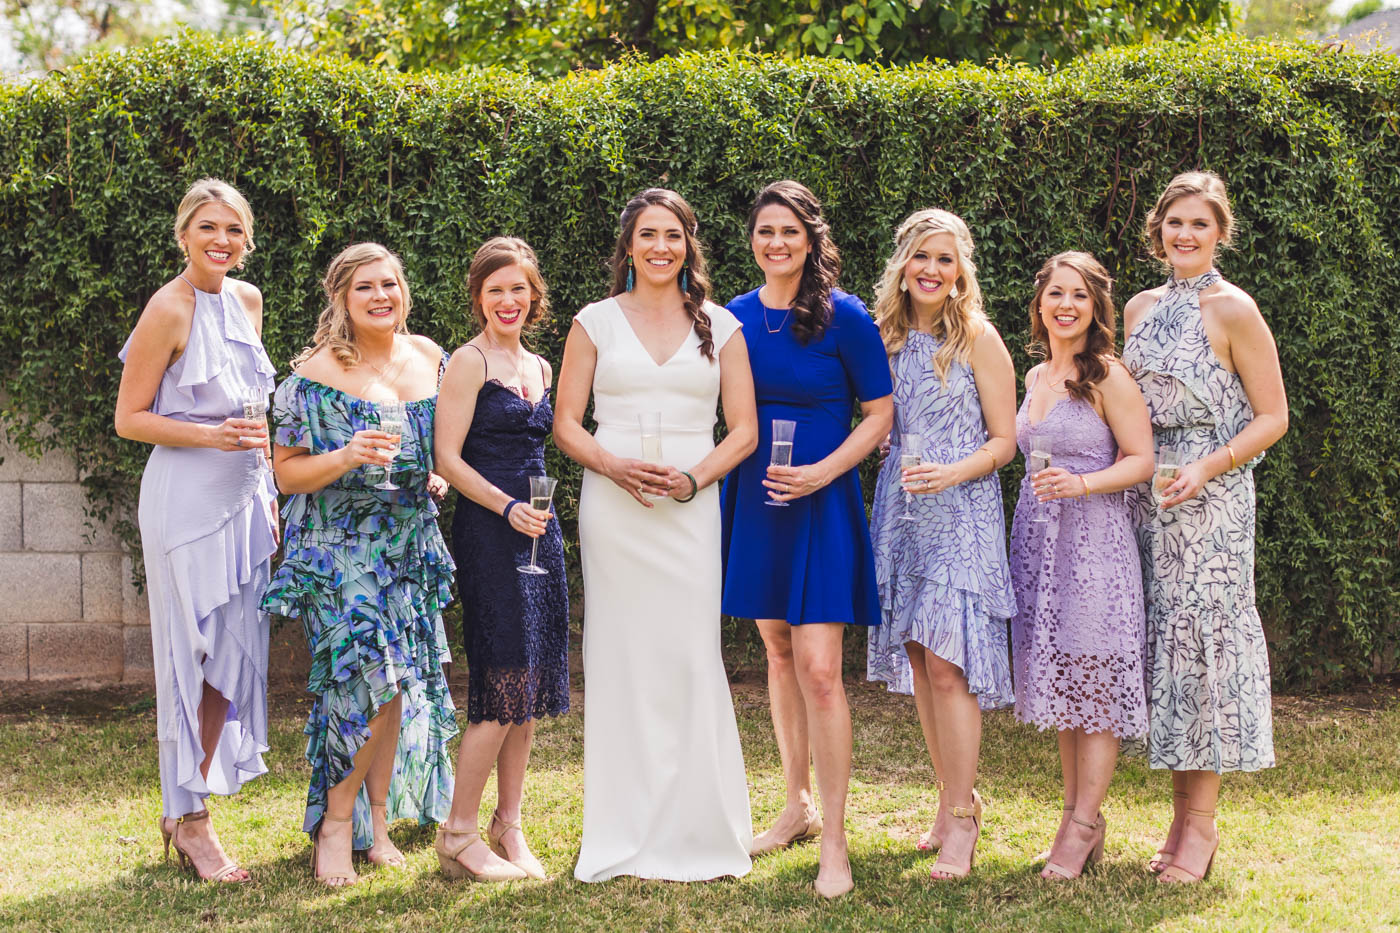 bridesmaids-group-portrait-champagne